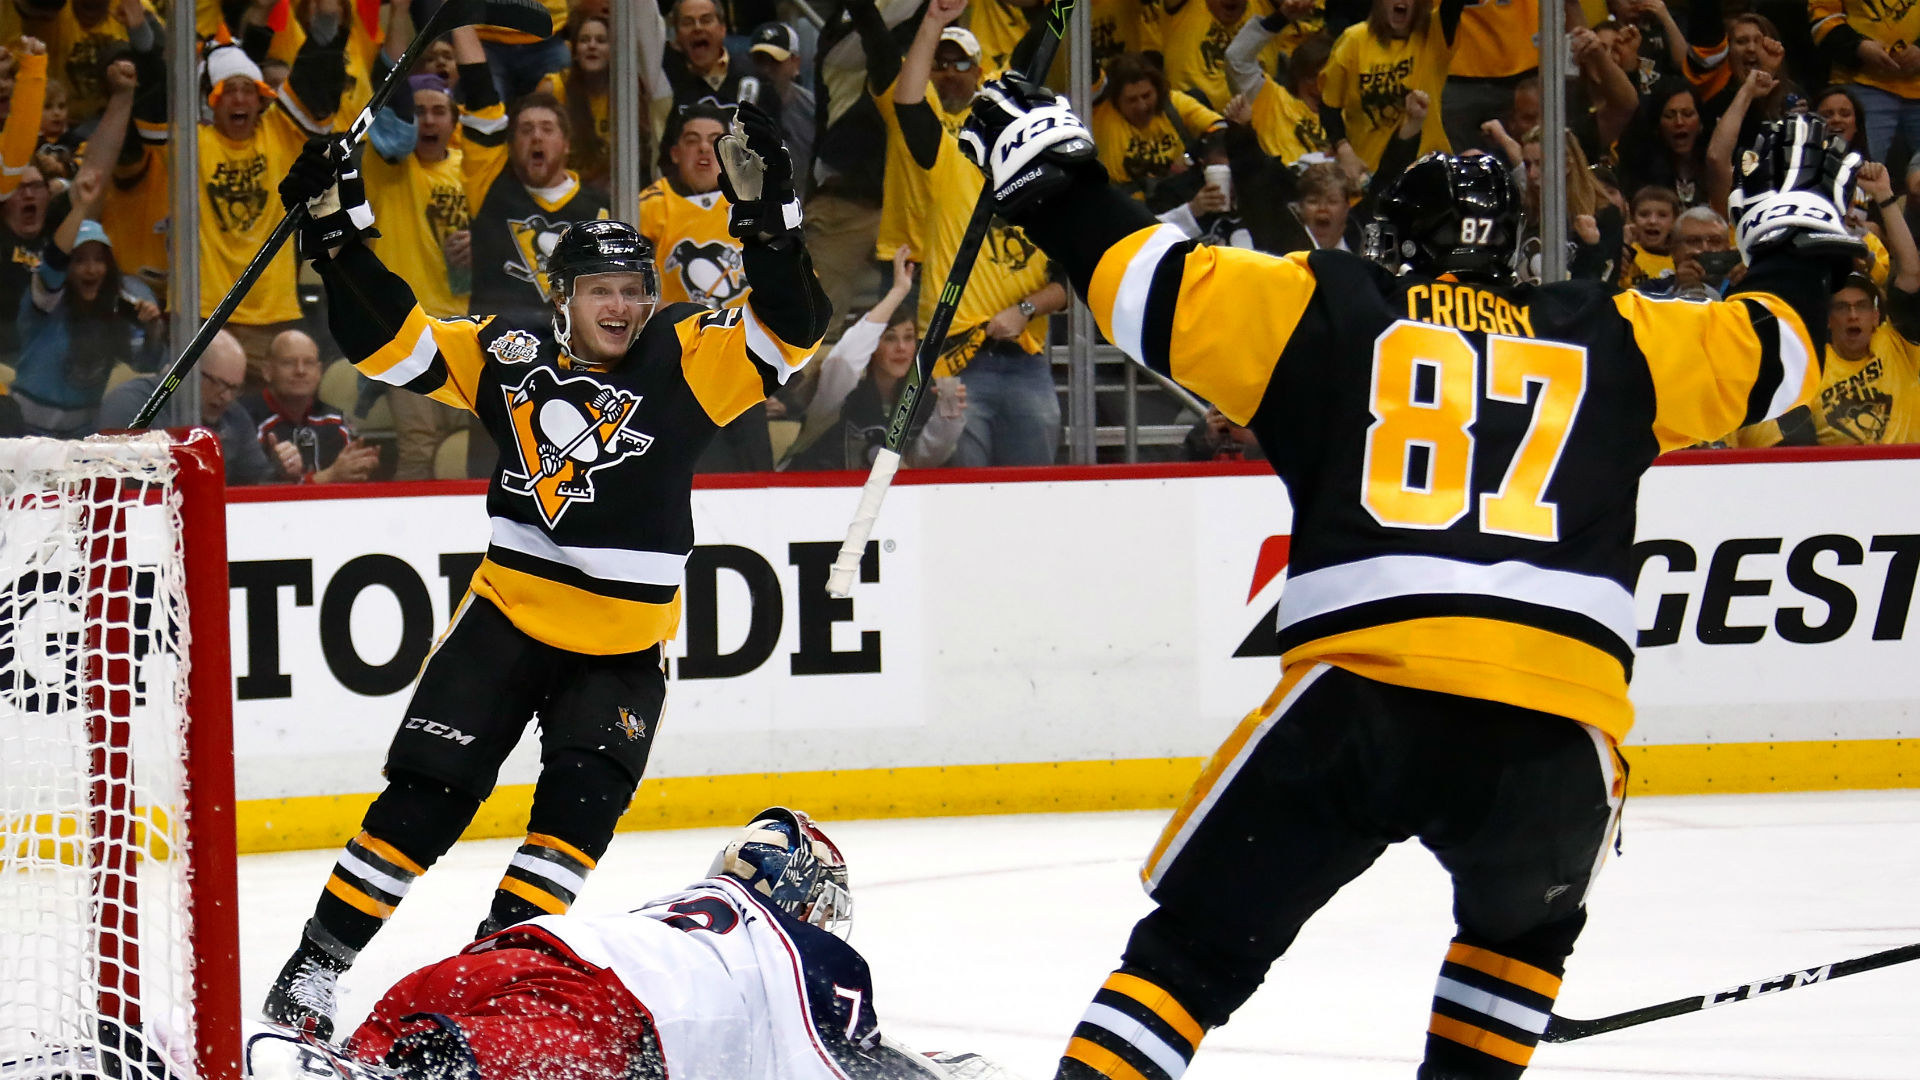 brand new fe27a 77f37 Stanley Cup playoffs three stars: Guentzel's hat-trick has ...